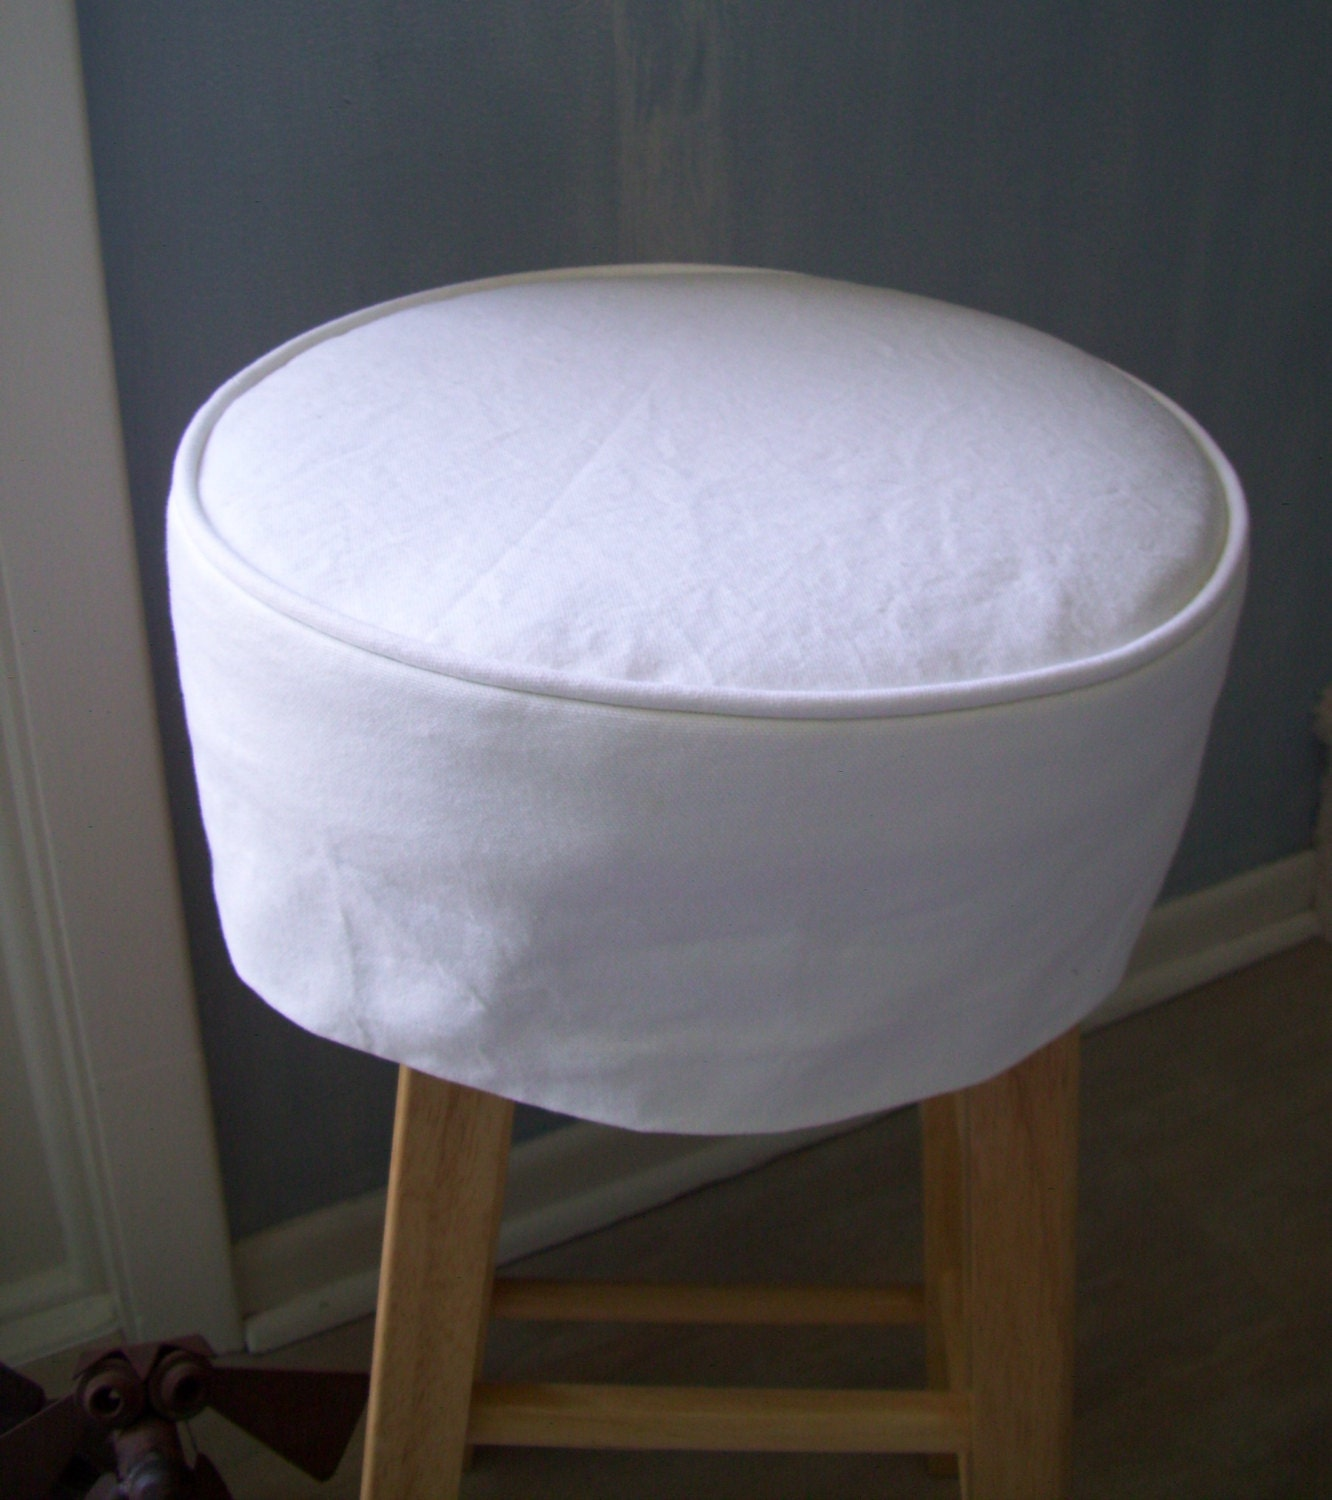 Bar Stool Covers with Cushion White Canvas Washable Slipcover : ilfullxfull632244400cc8r from www.etsy.com size 1332 x 1500 jpeg 283kB